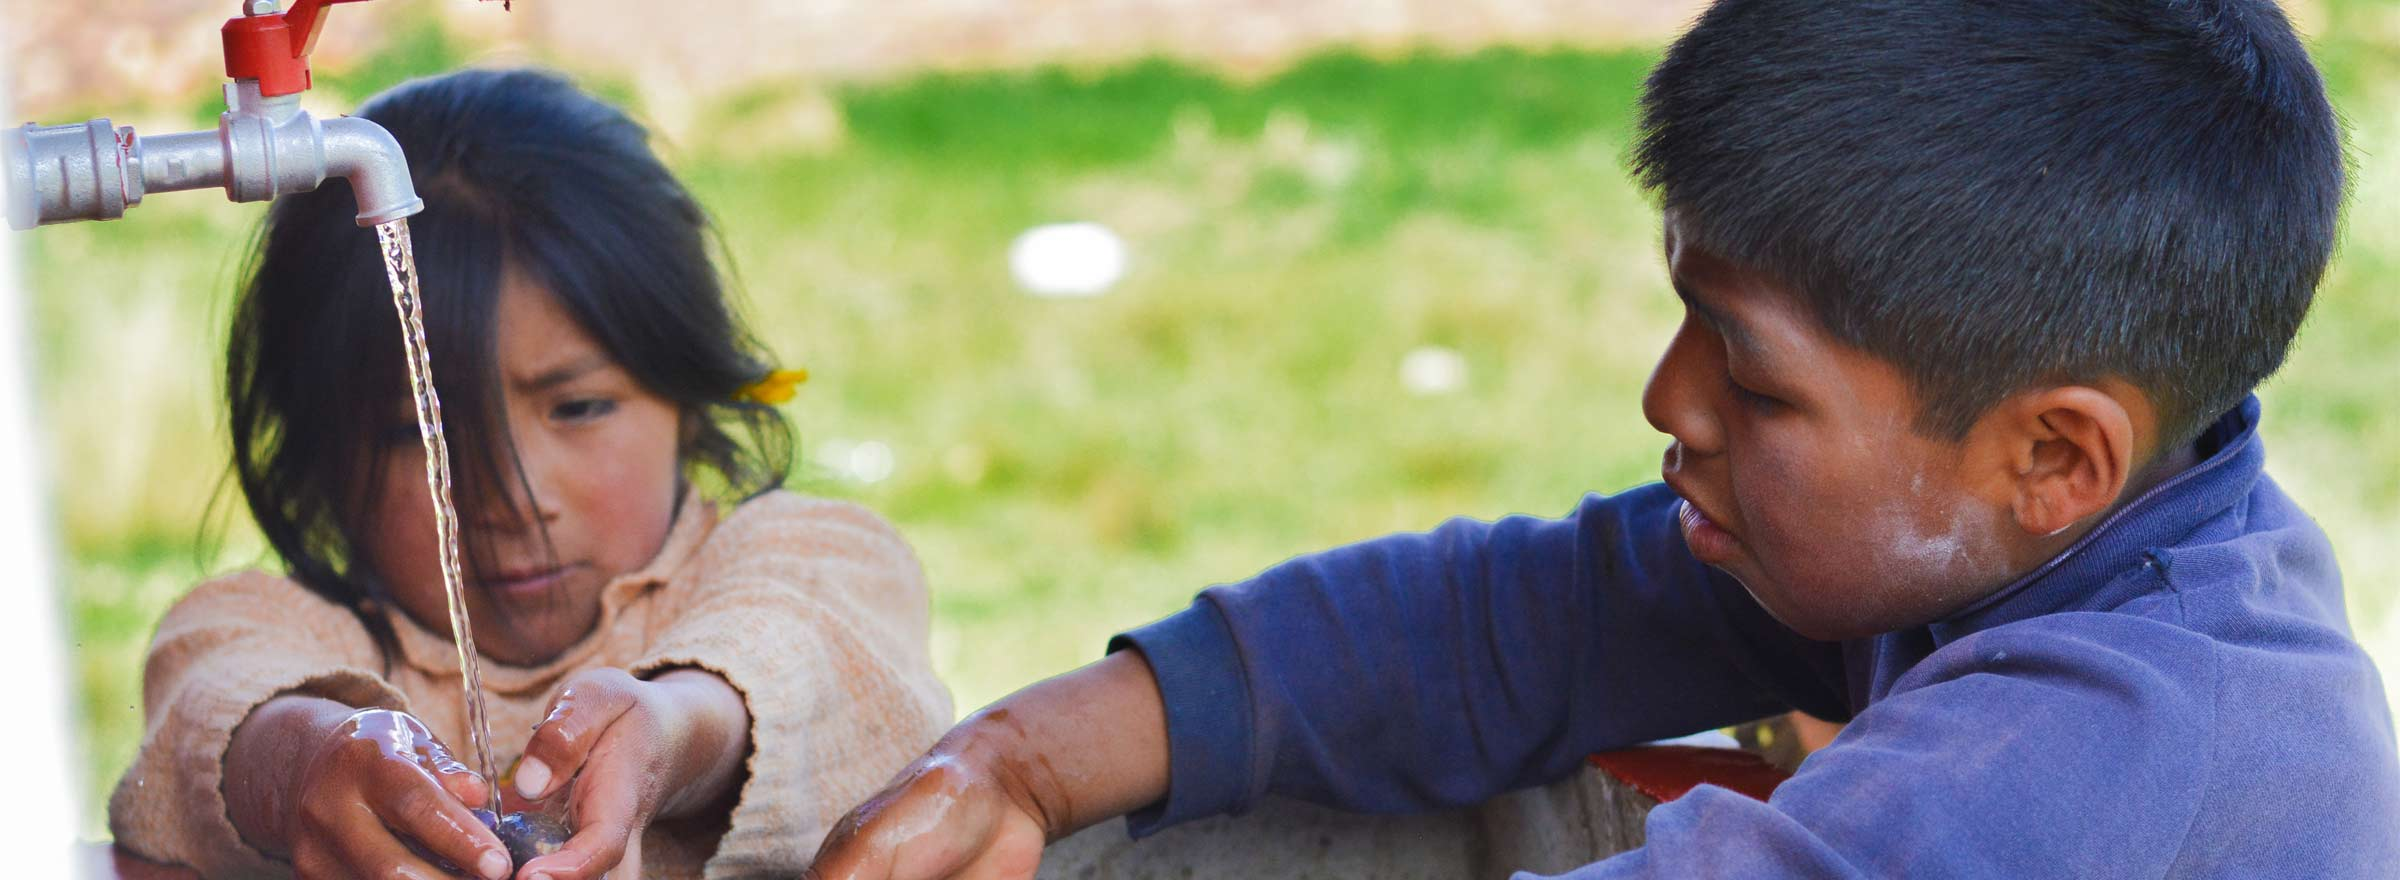 Oxfam India leverages Veritas in its work to eliminate poverty